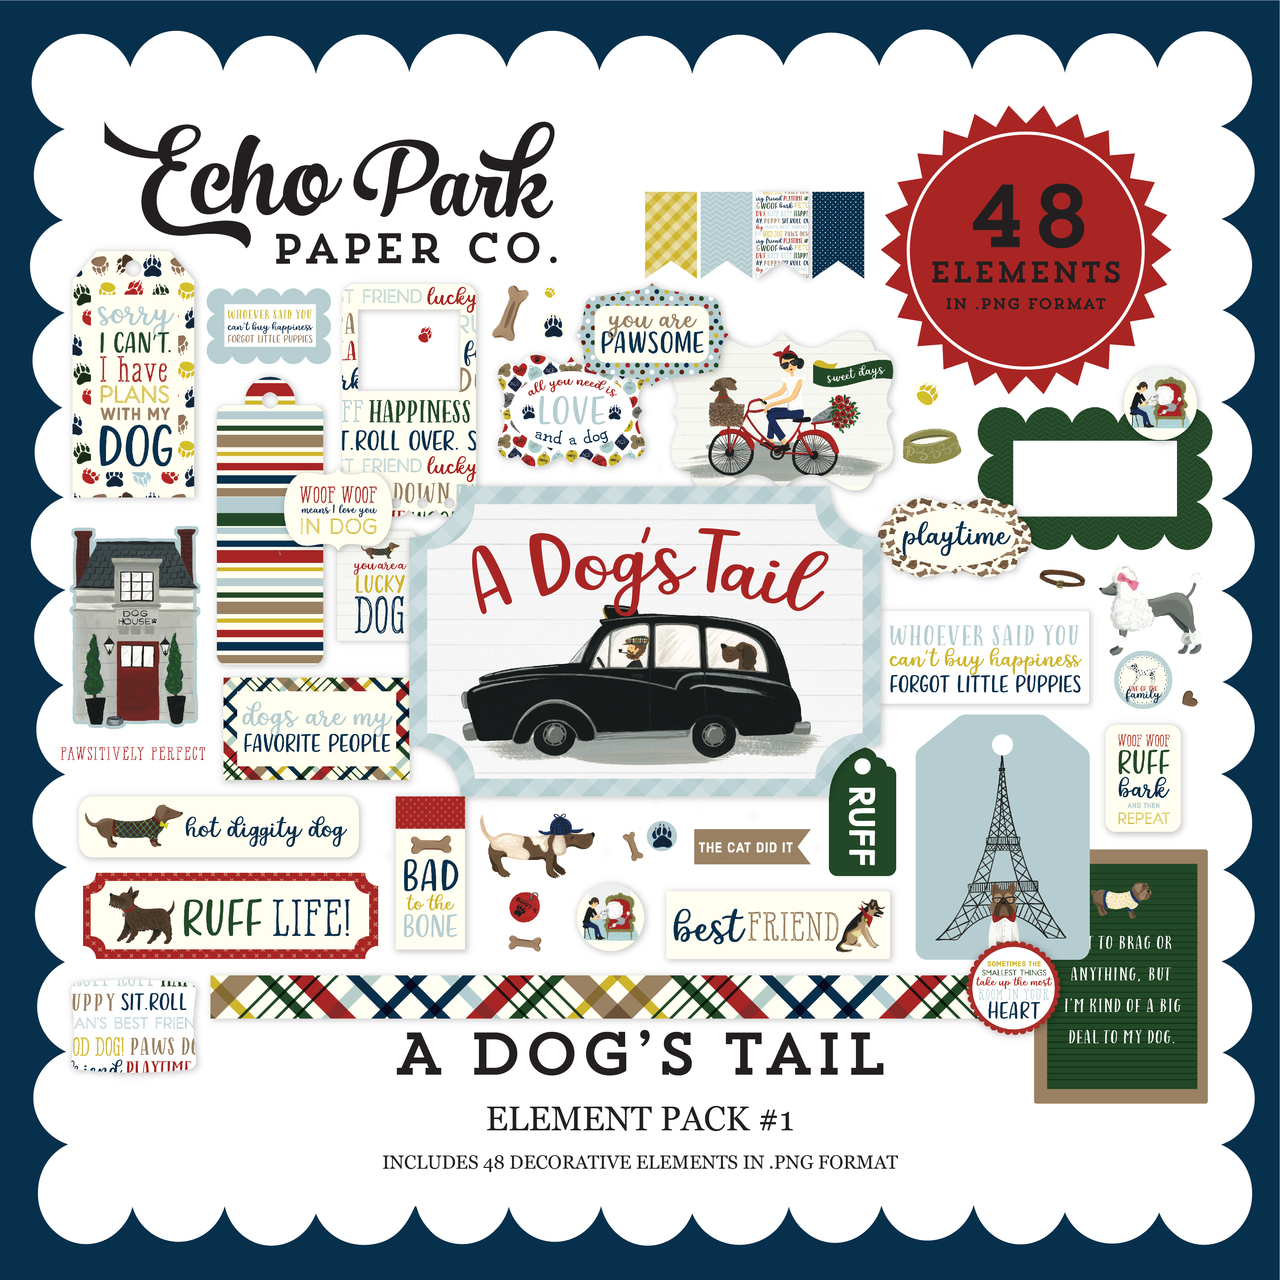 A Dog's Tail Element Pack #1